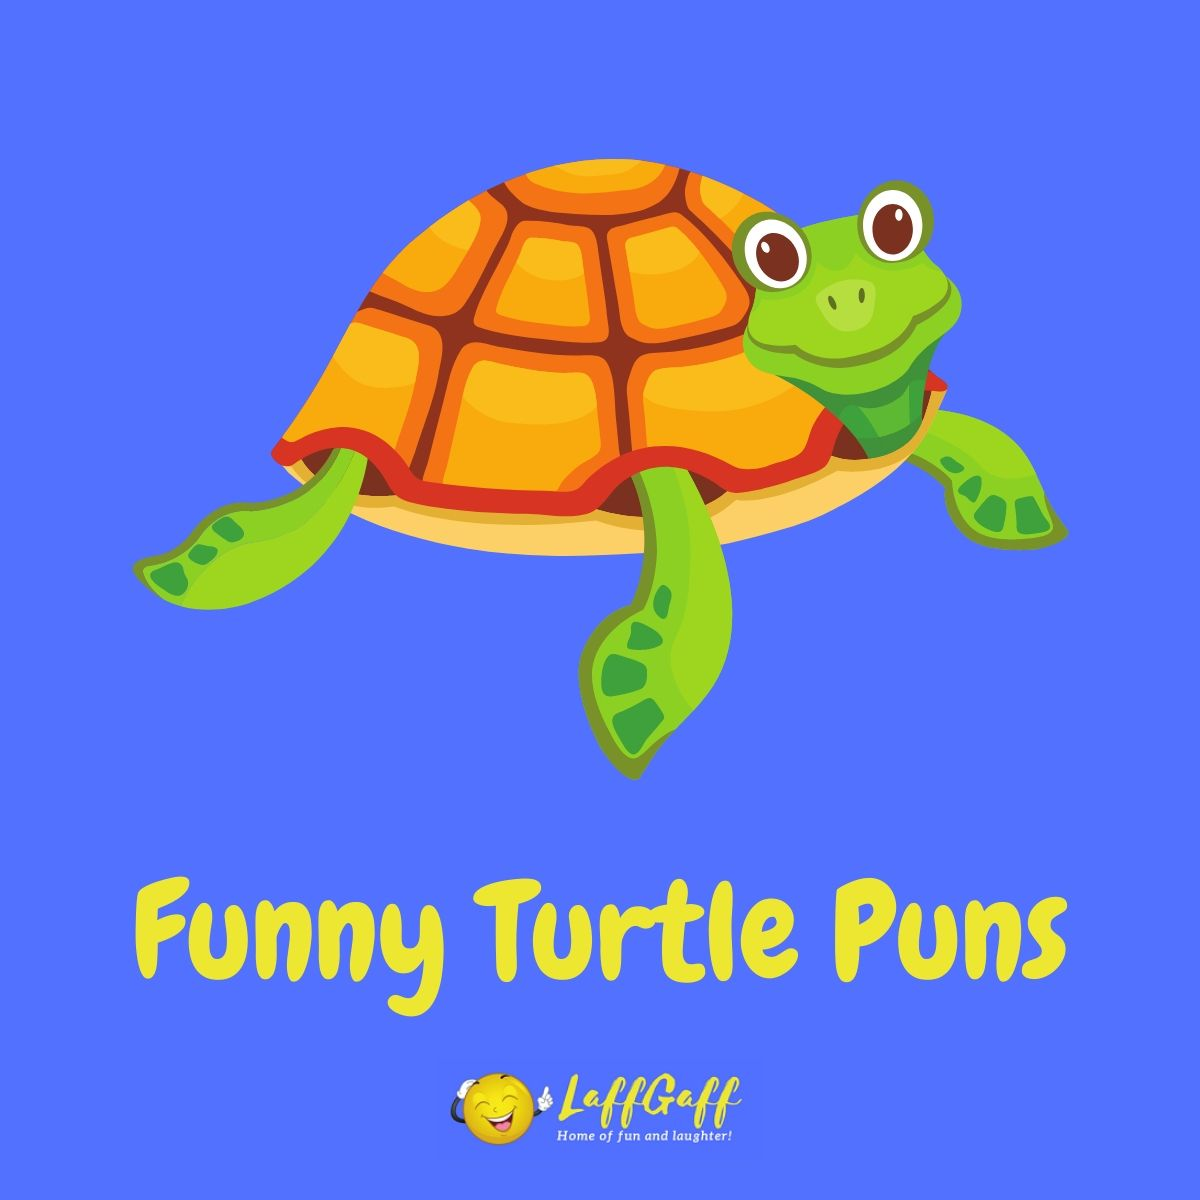 Featured image for a page of funny turtle puns and jokes.